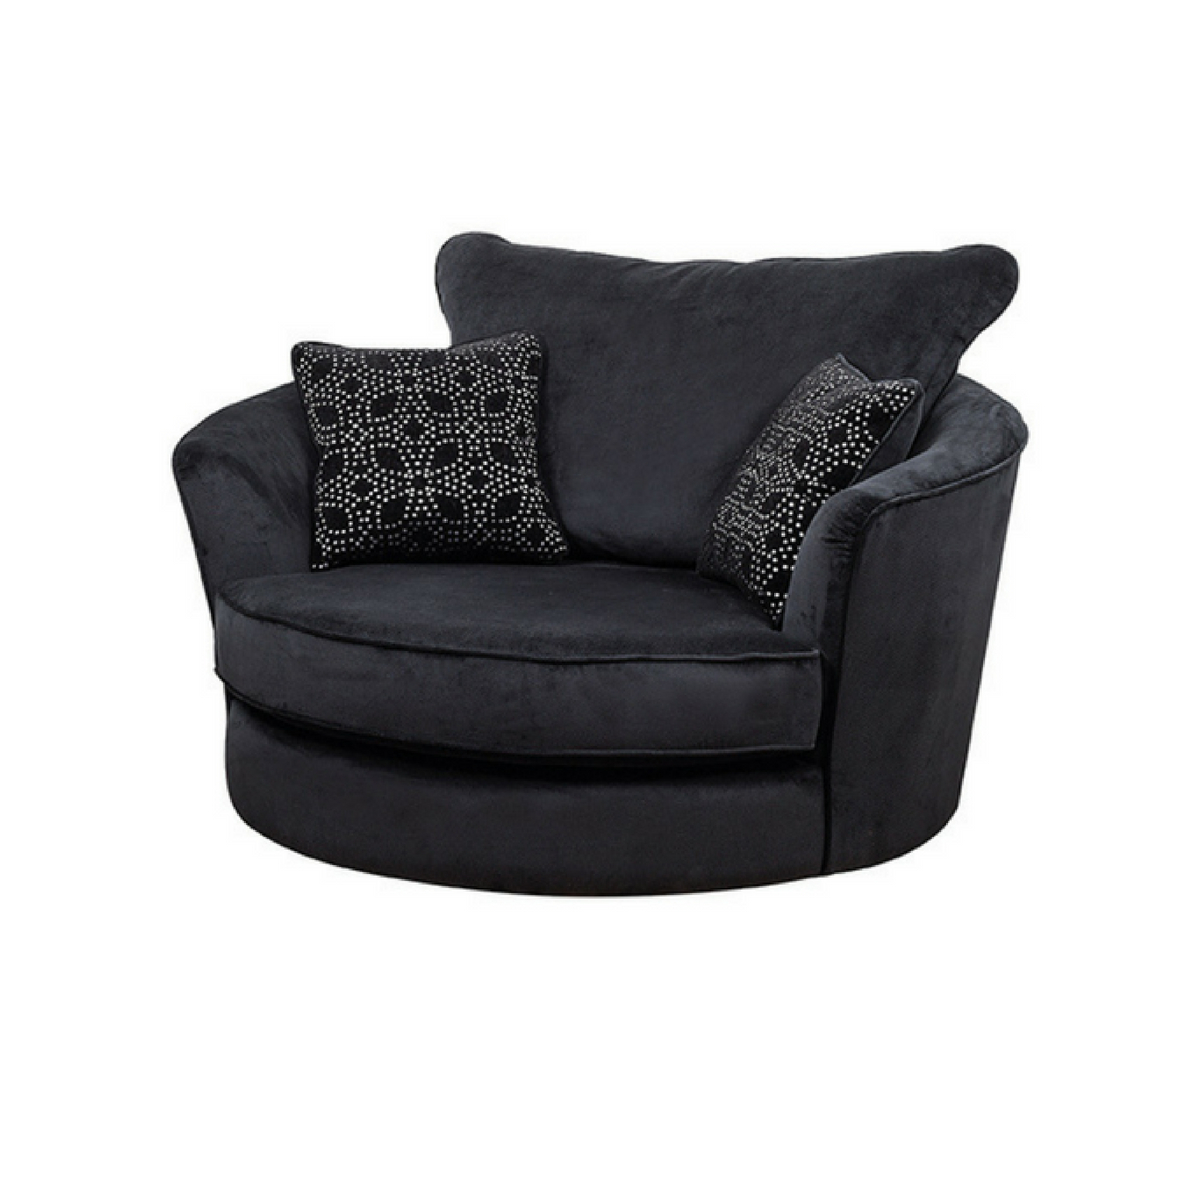 2018 Samantha Cuddler – Corcorans Furniture & Carpets With Sofa With Swivel Chair (View 1 of 20)